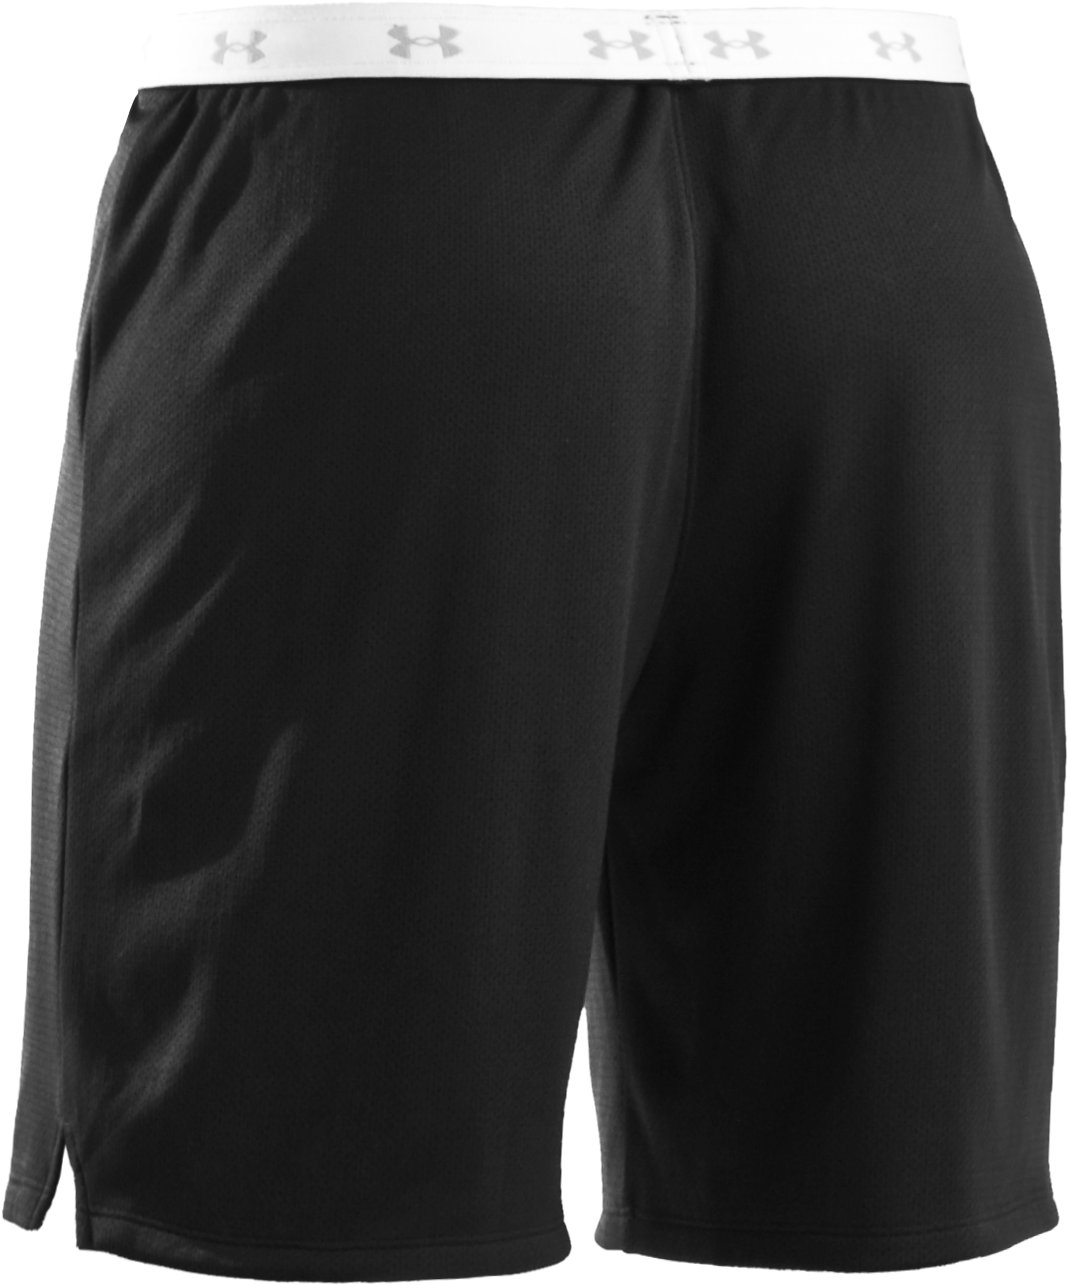 "Women's Dominate 8.5"" Short, Black ,"